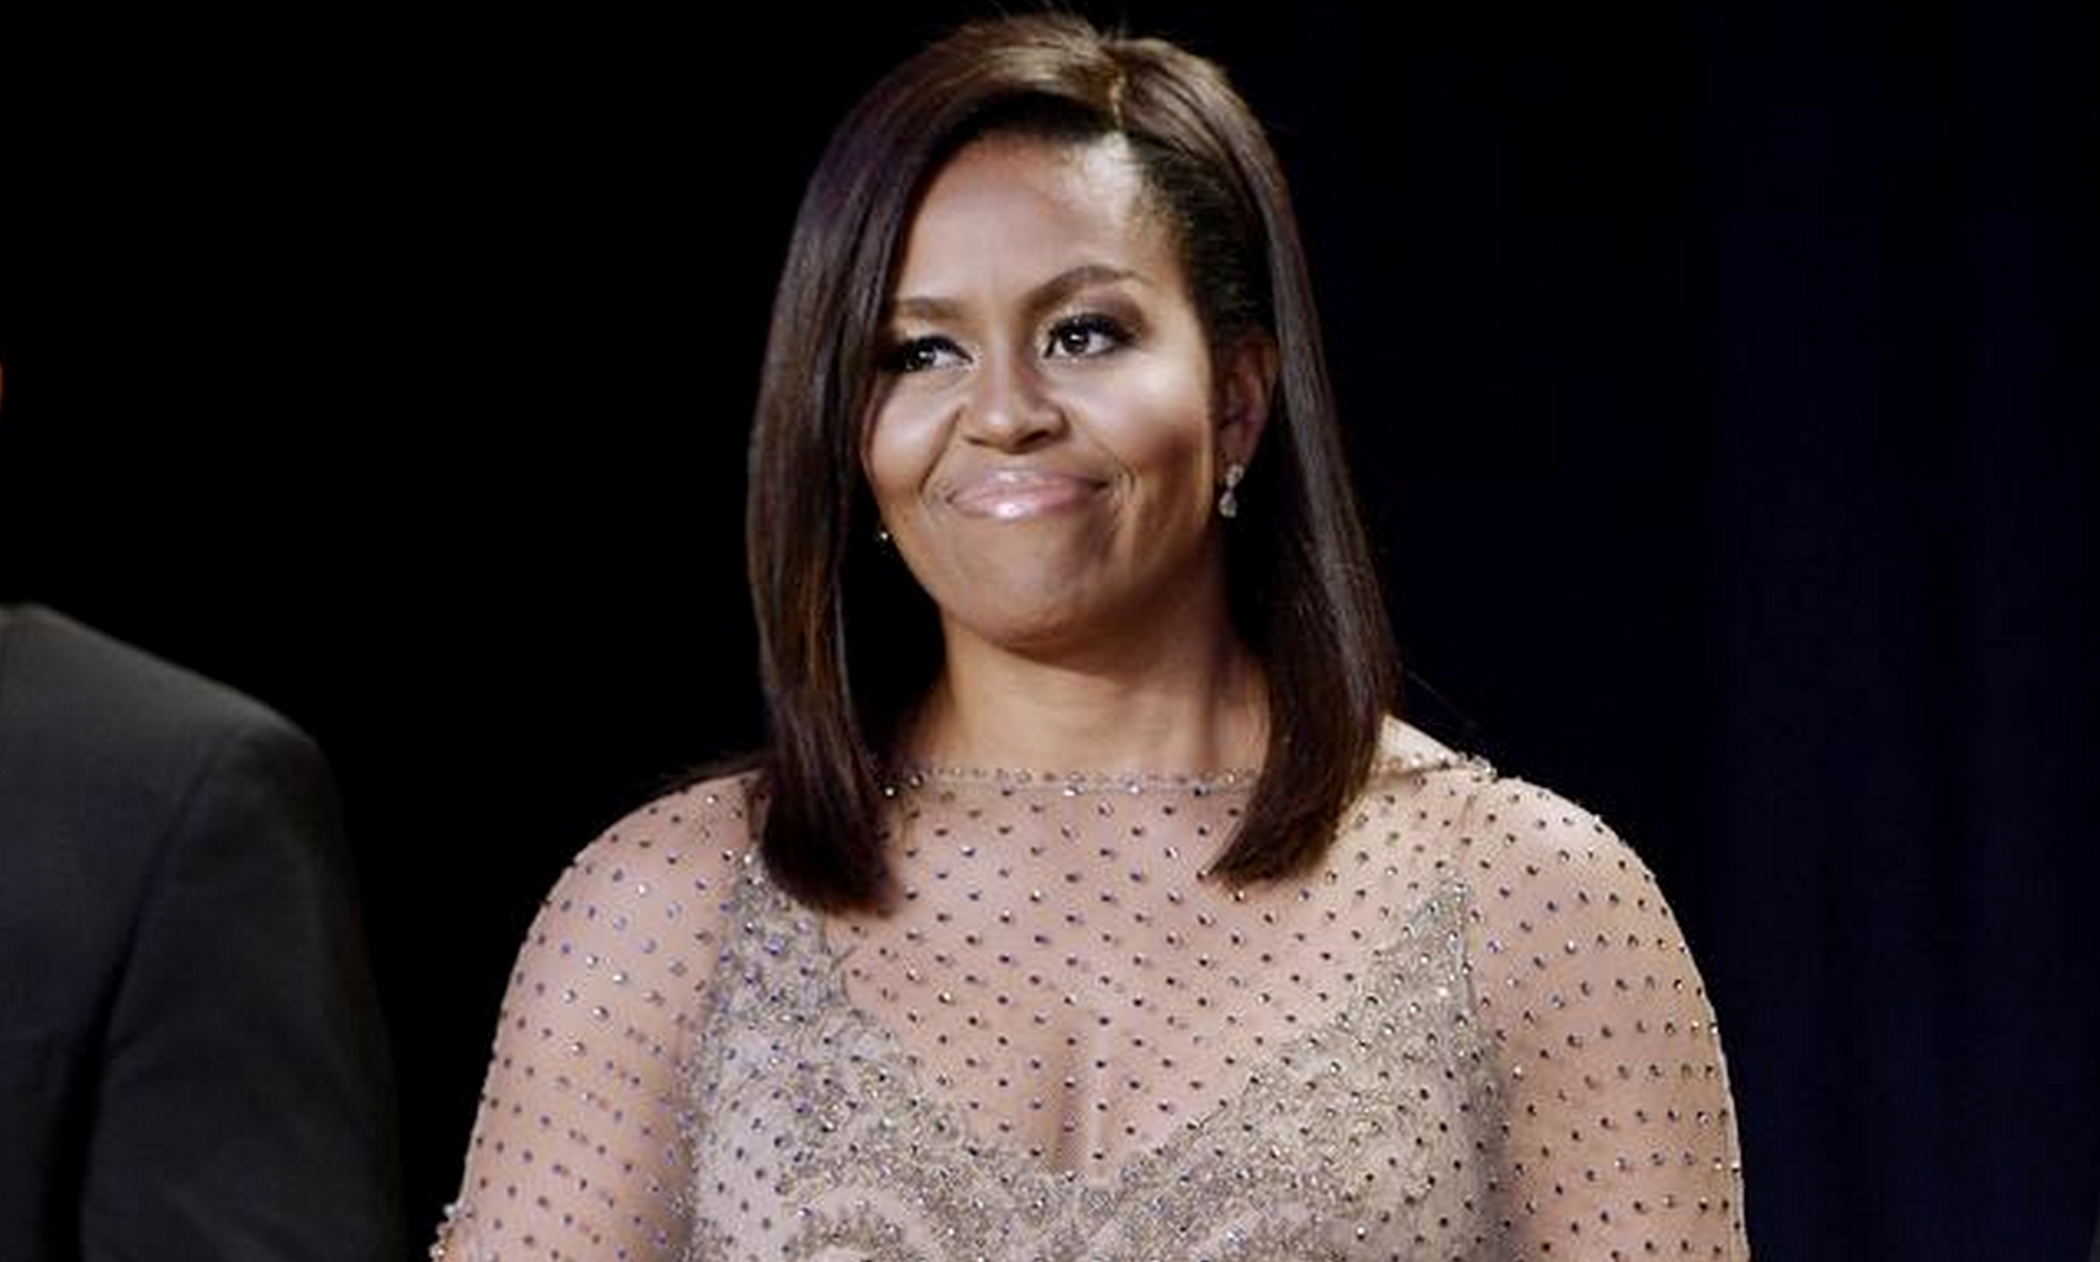 Michelle Obama sparkles in gold at final White House Correspondents' Dinner